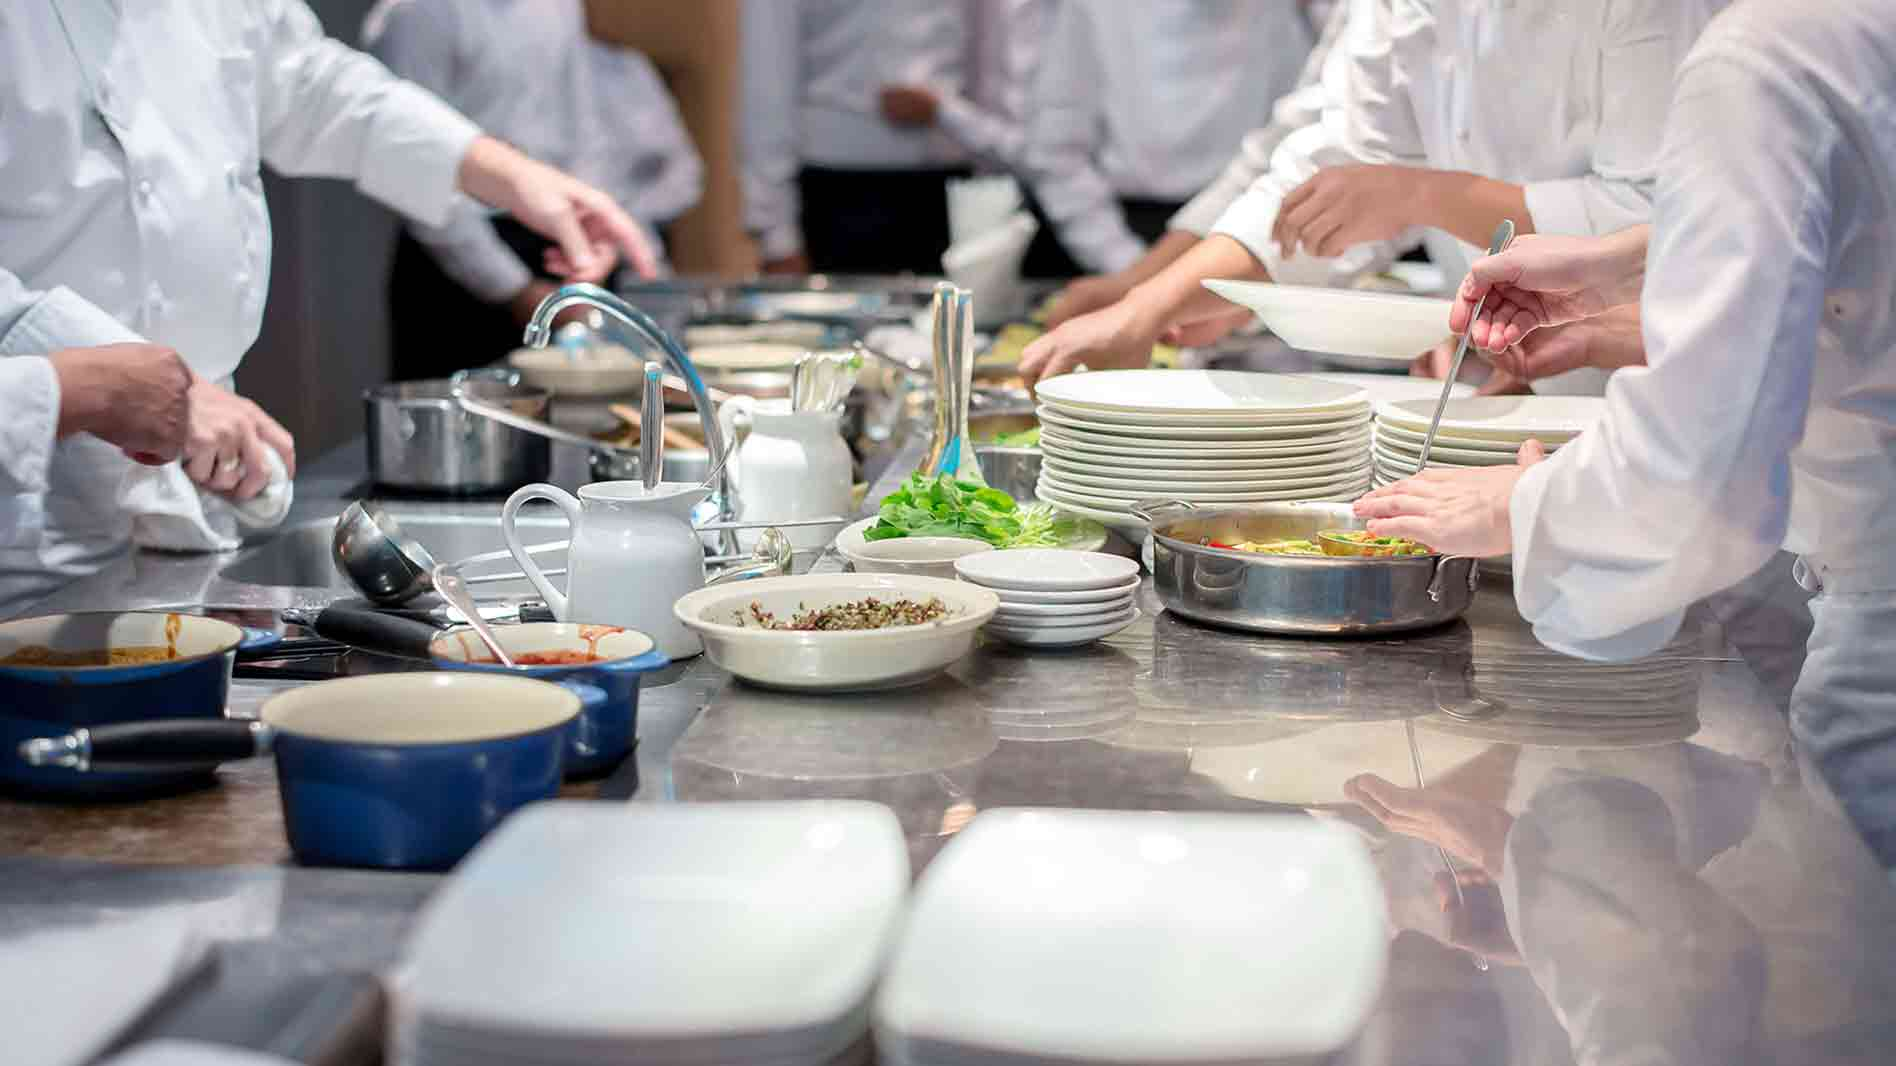 Are Kitchen Wages Killing the Industry?